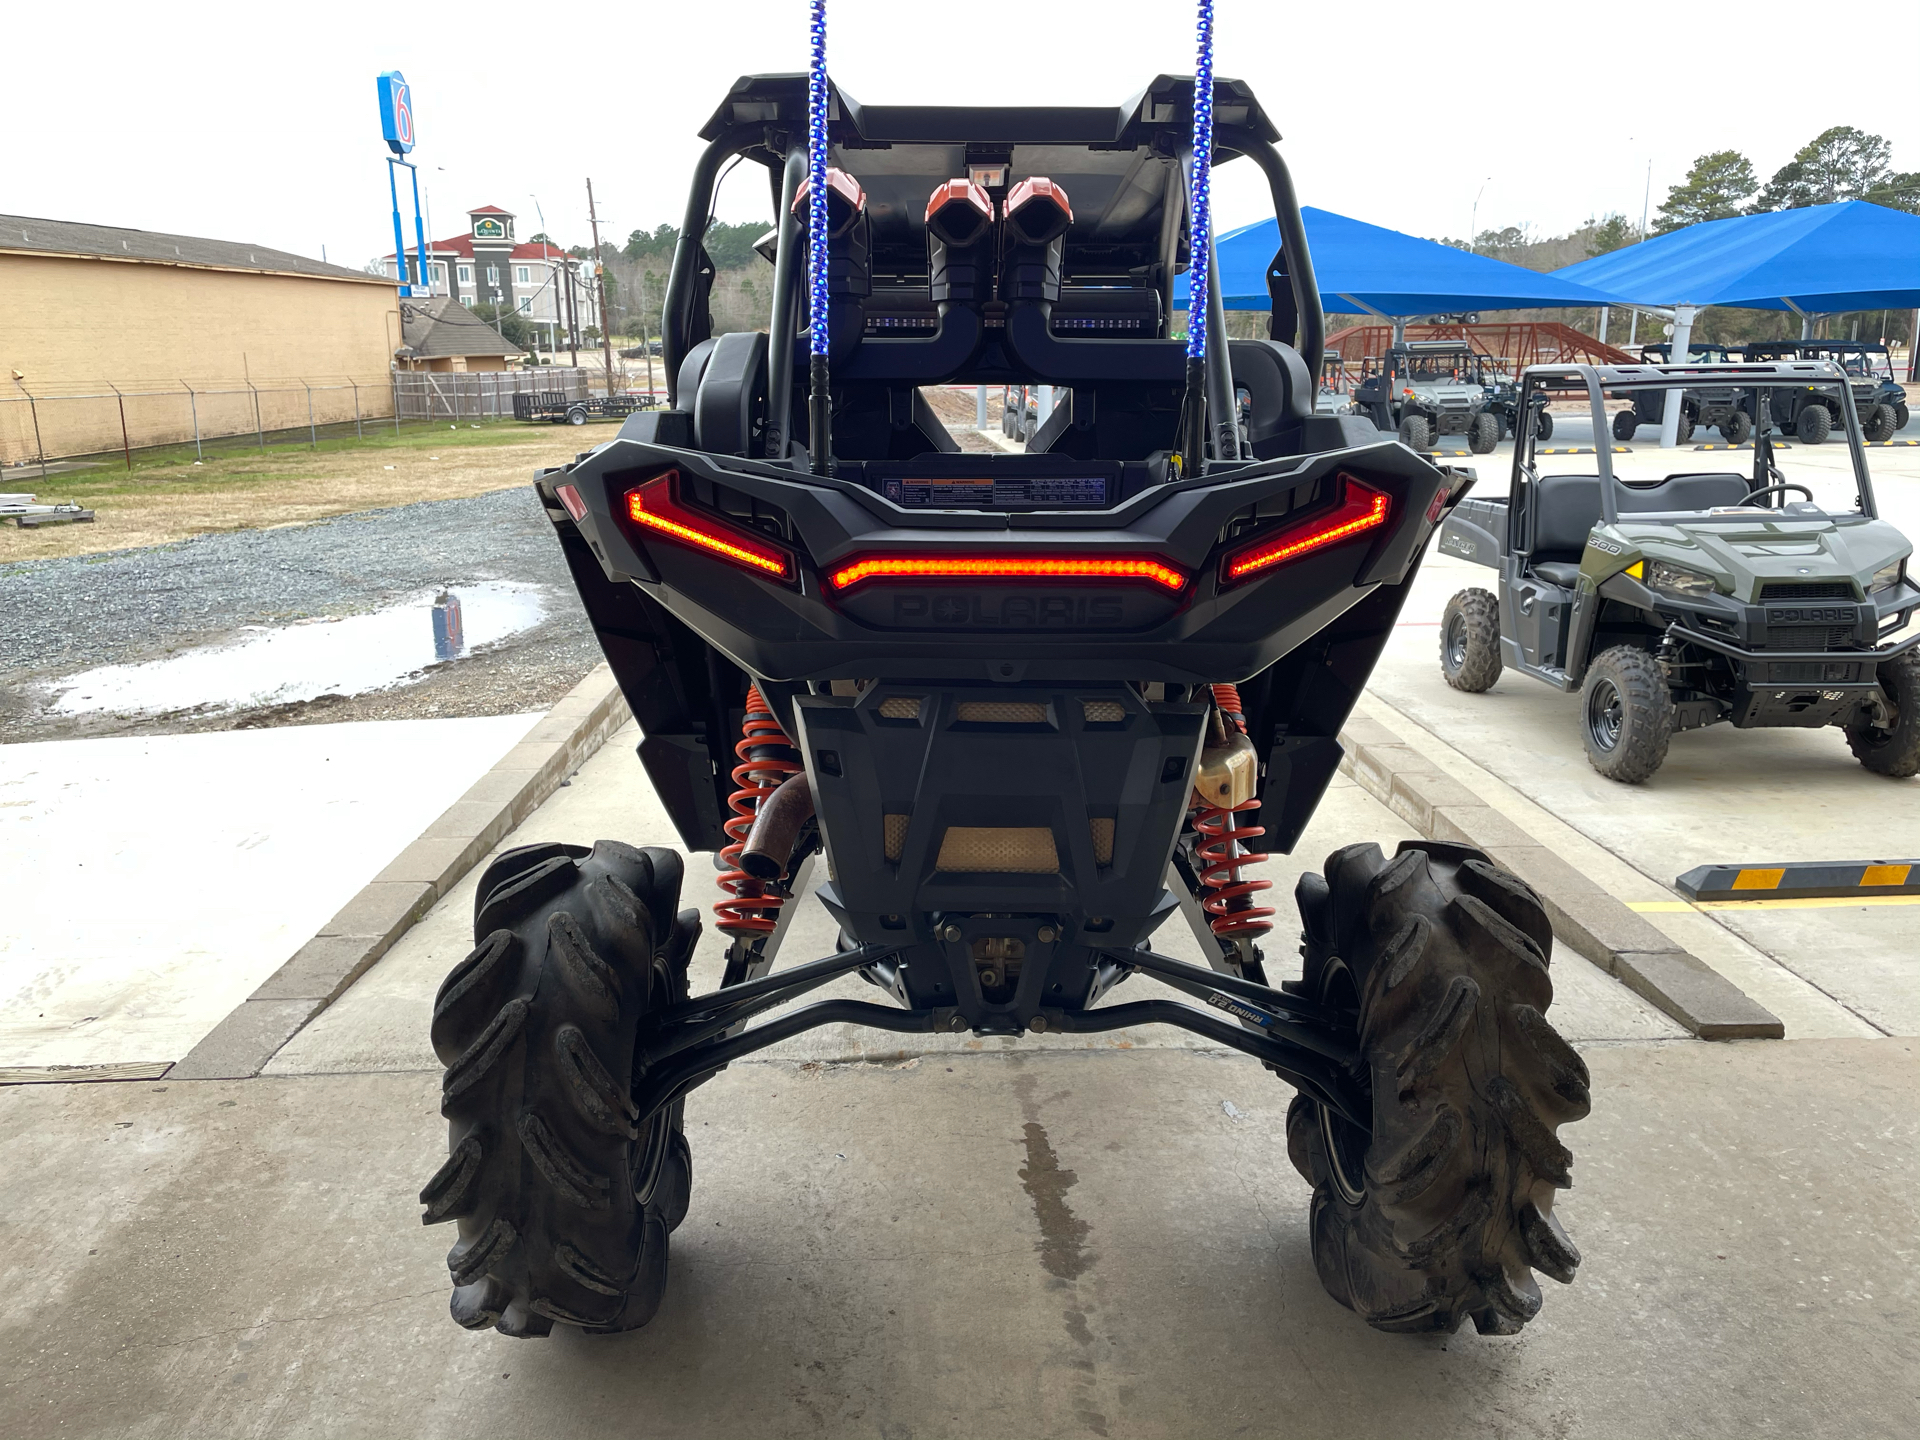 2019 Polaris RZR XP 1000 High Lifter in Marshall, Texas - Photo 9